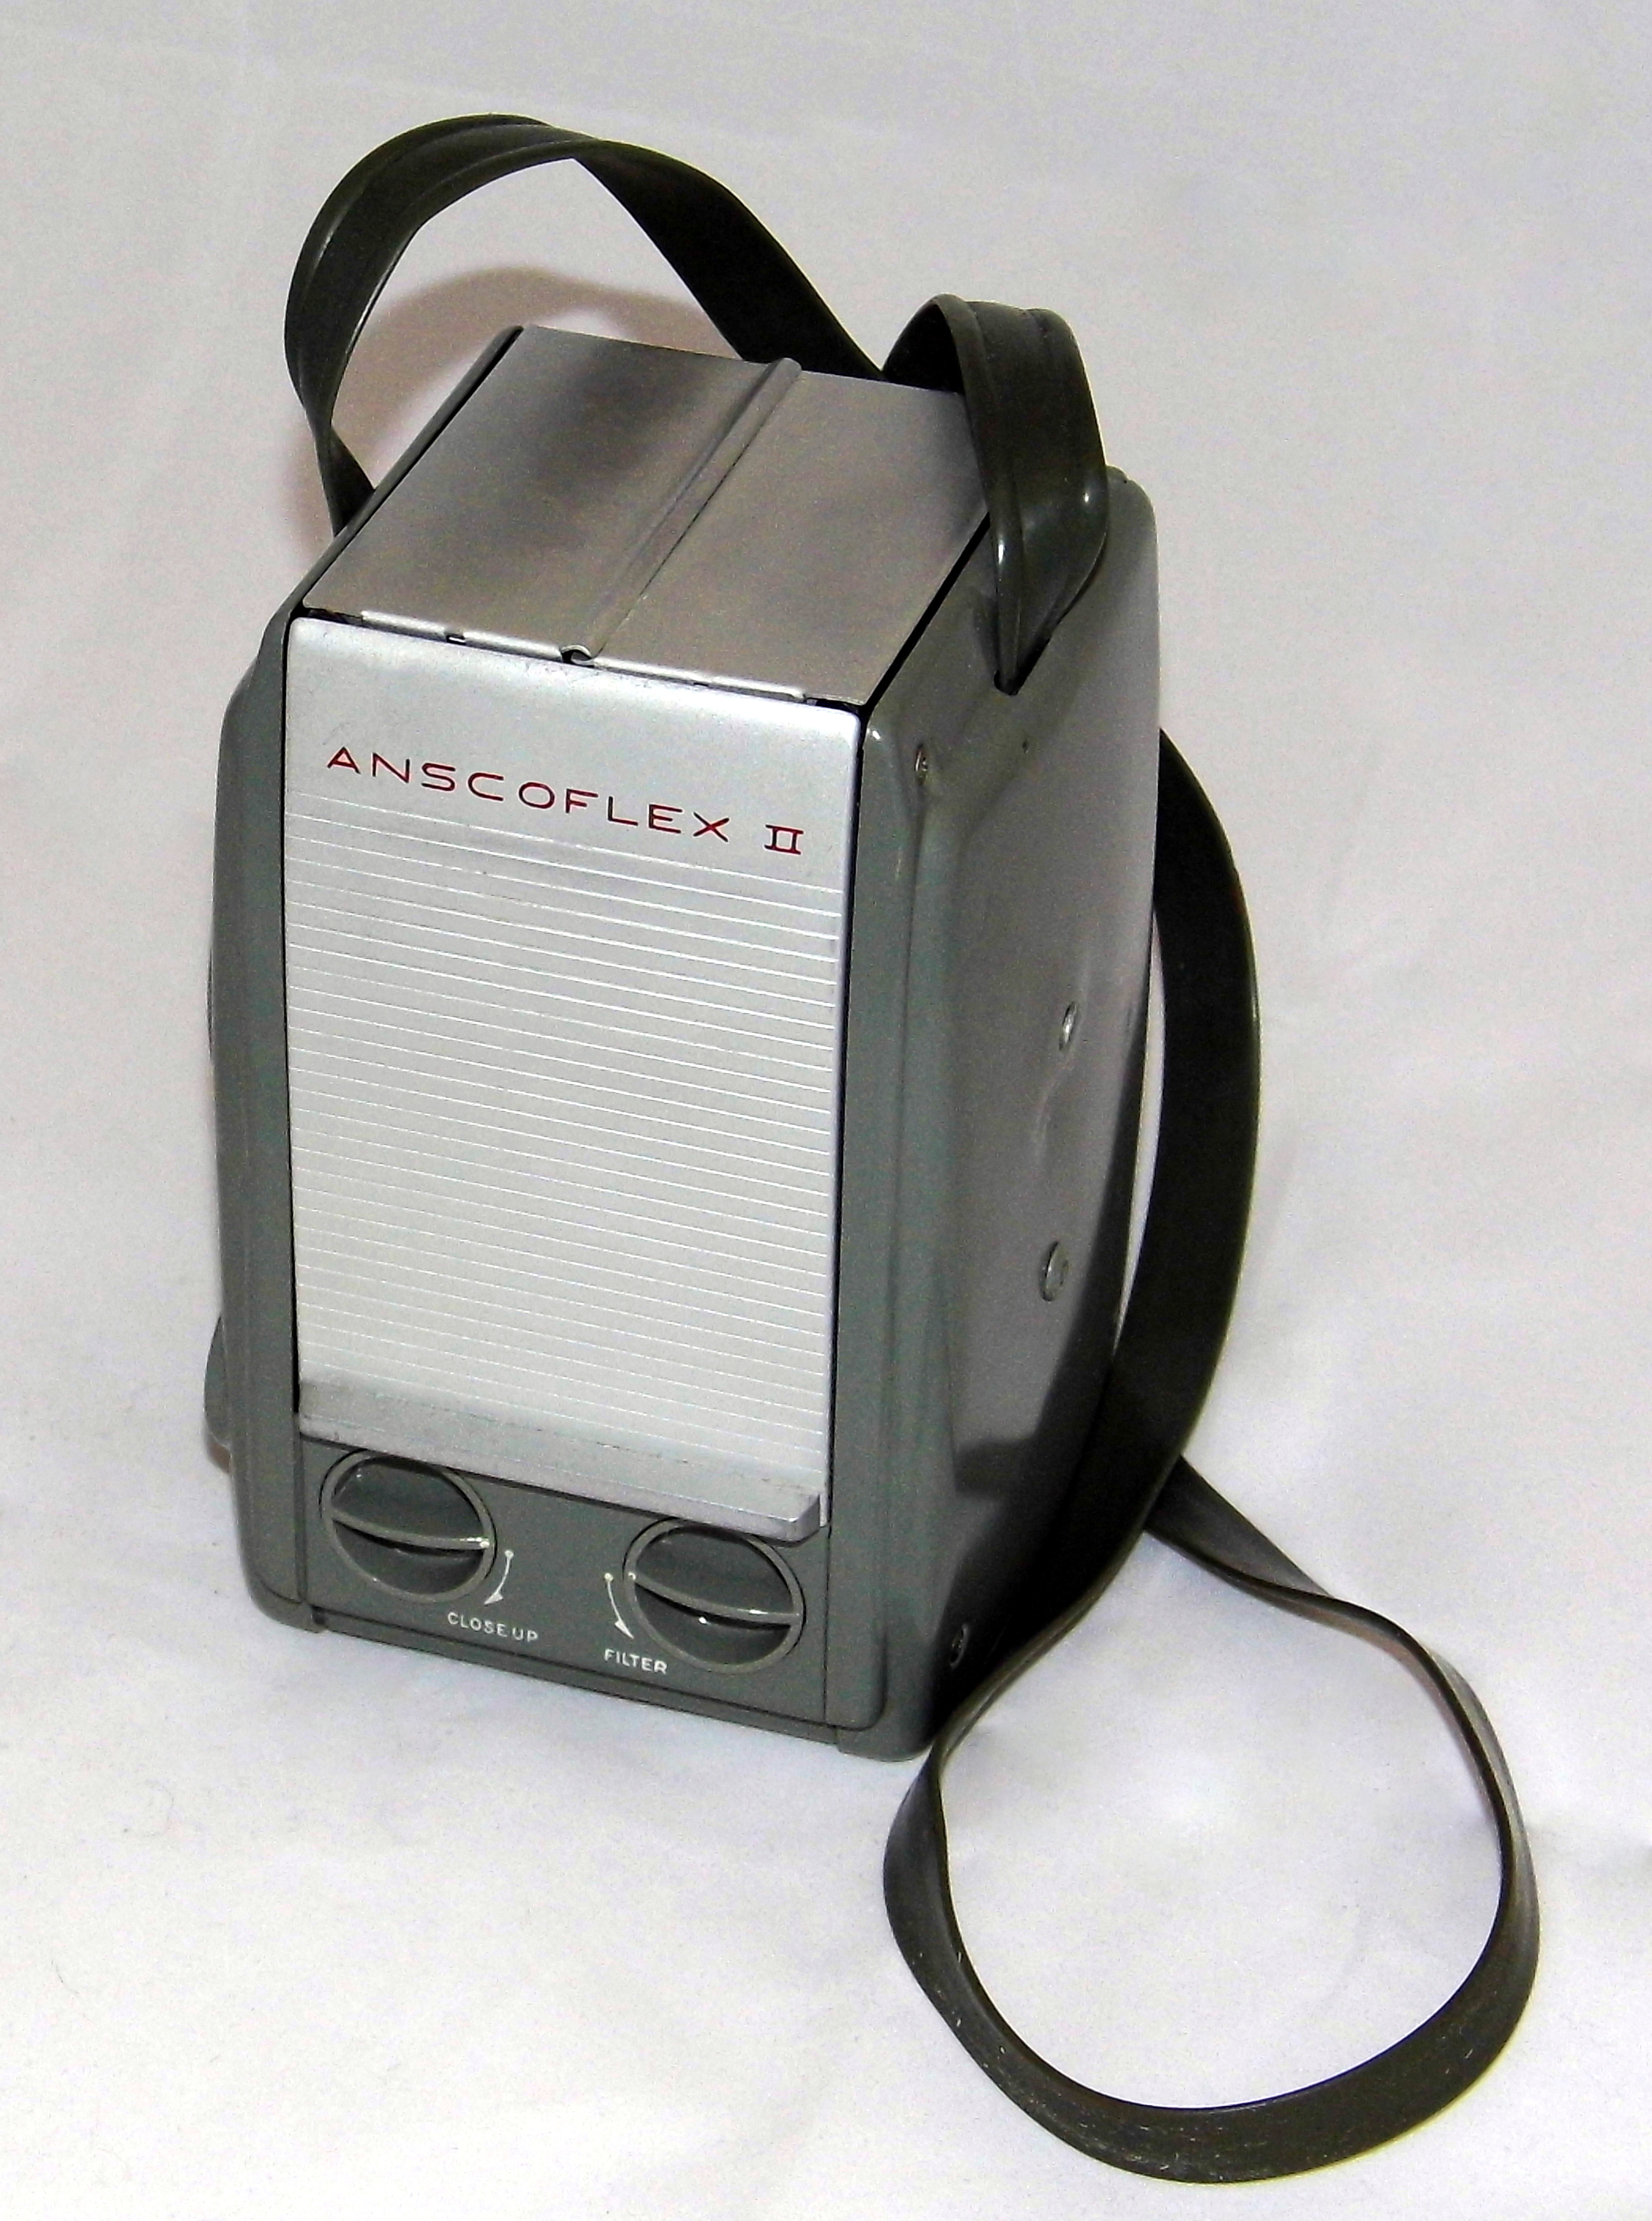 Vintage Ansco Anscoflex II Film Camera, Designed By Raymond Loewy, Made In USA, Uses 620 Film, Manufactured From 1953 - 1956 (17031266579)